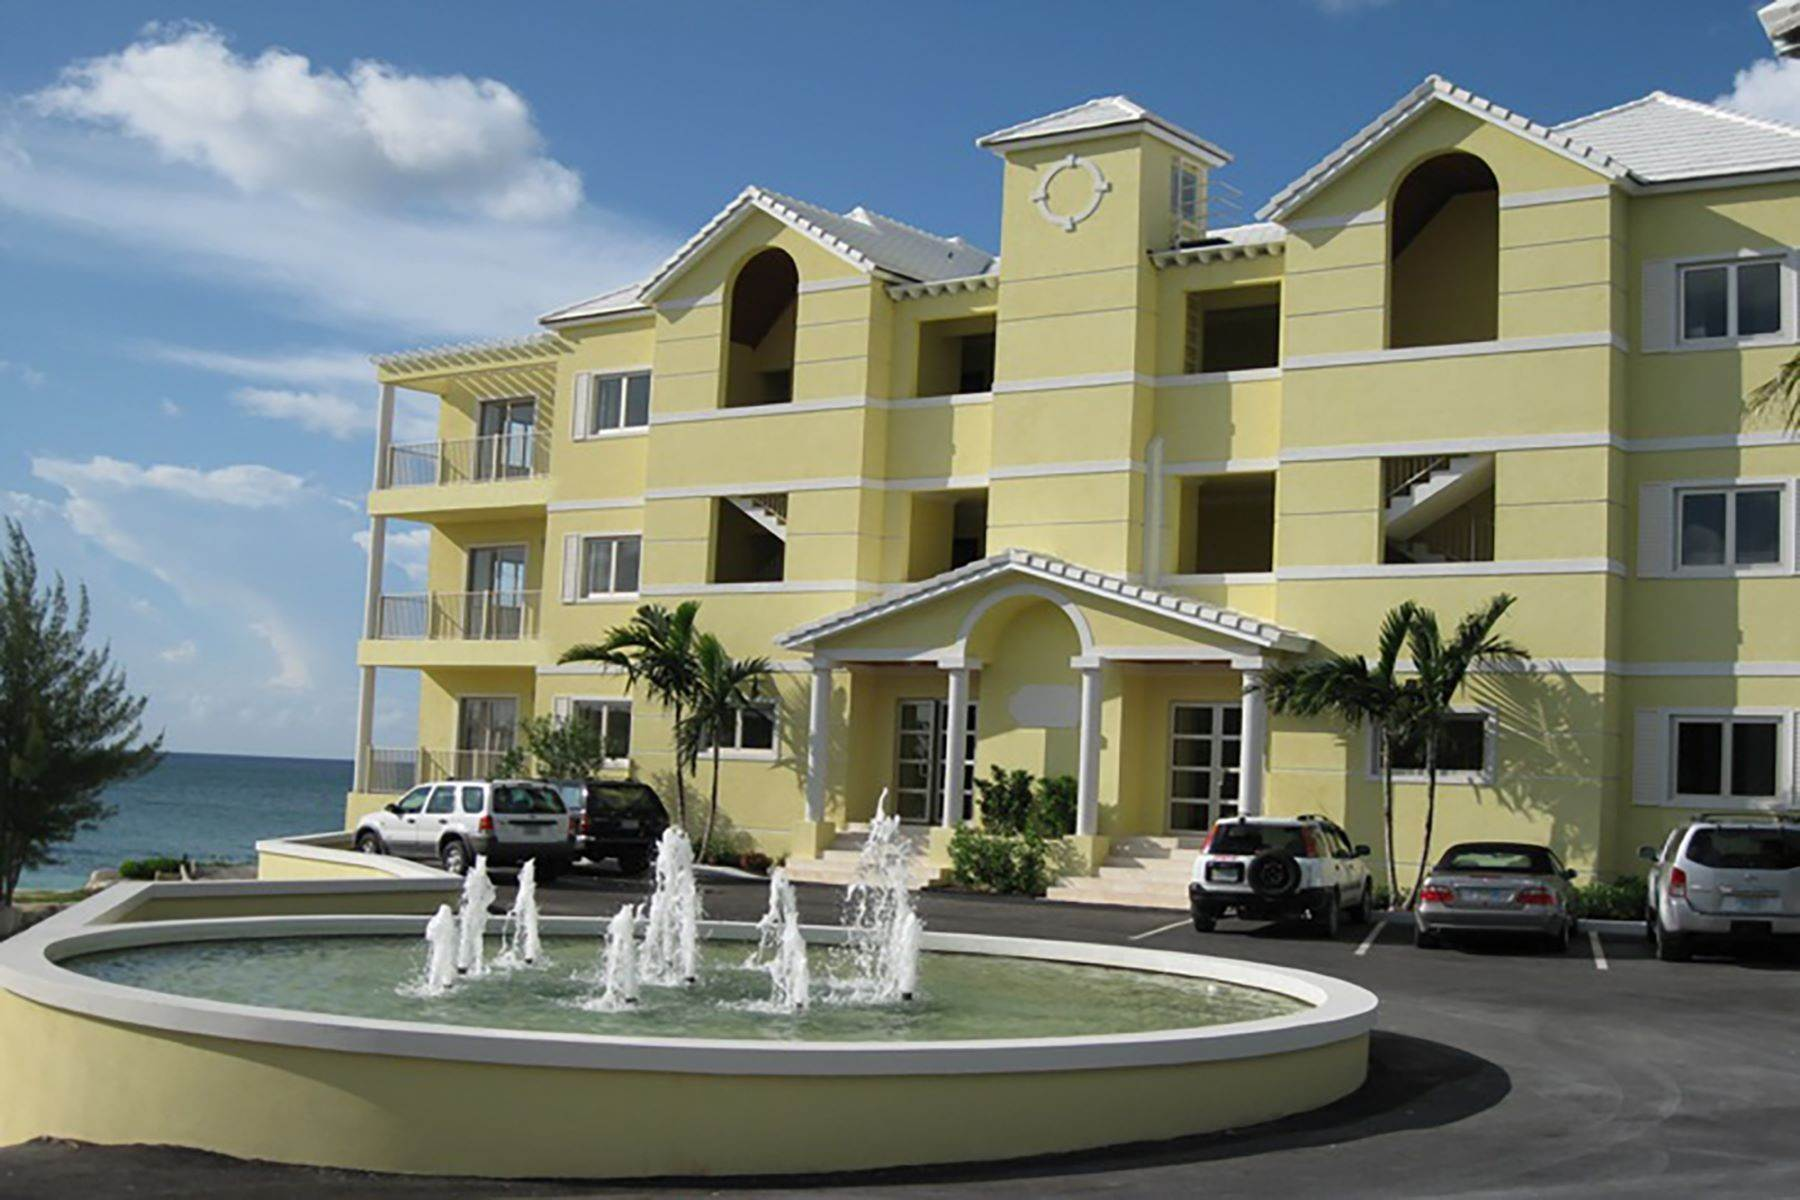 Condominiums à Columbus Cove Rental Columbus Cove, Love Beach, New Providence/Nassau Bahamas